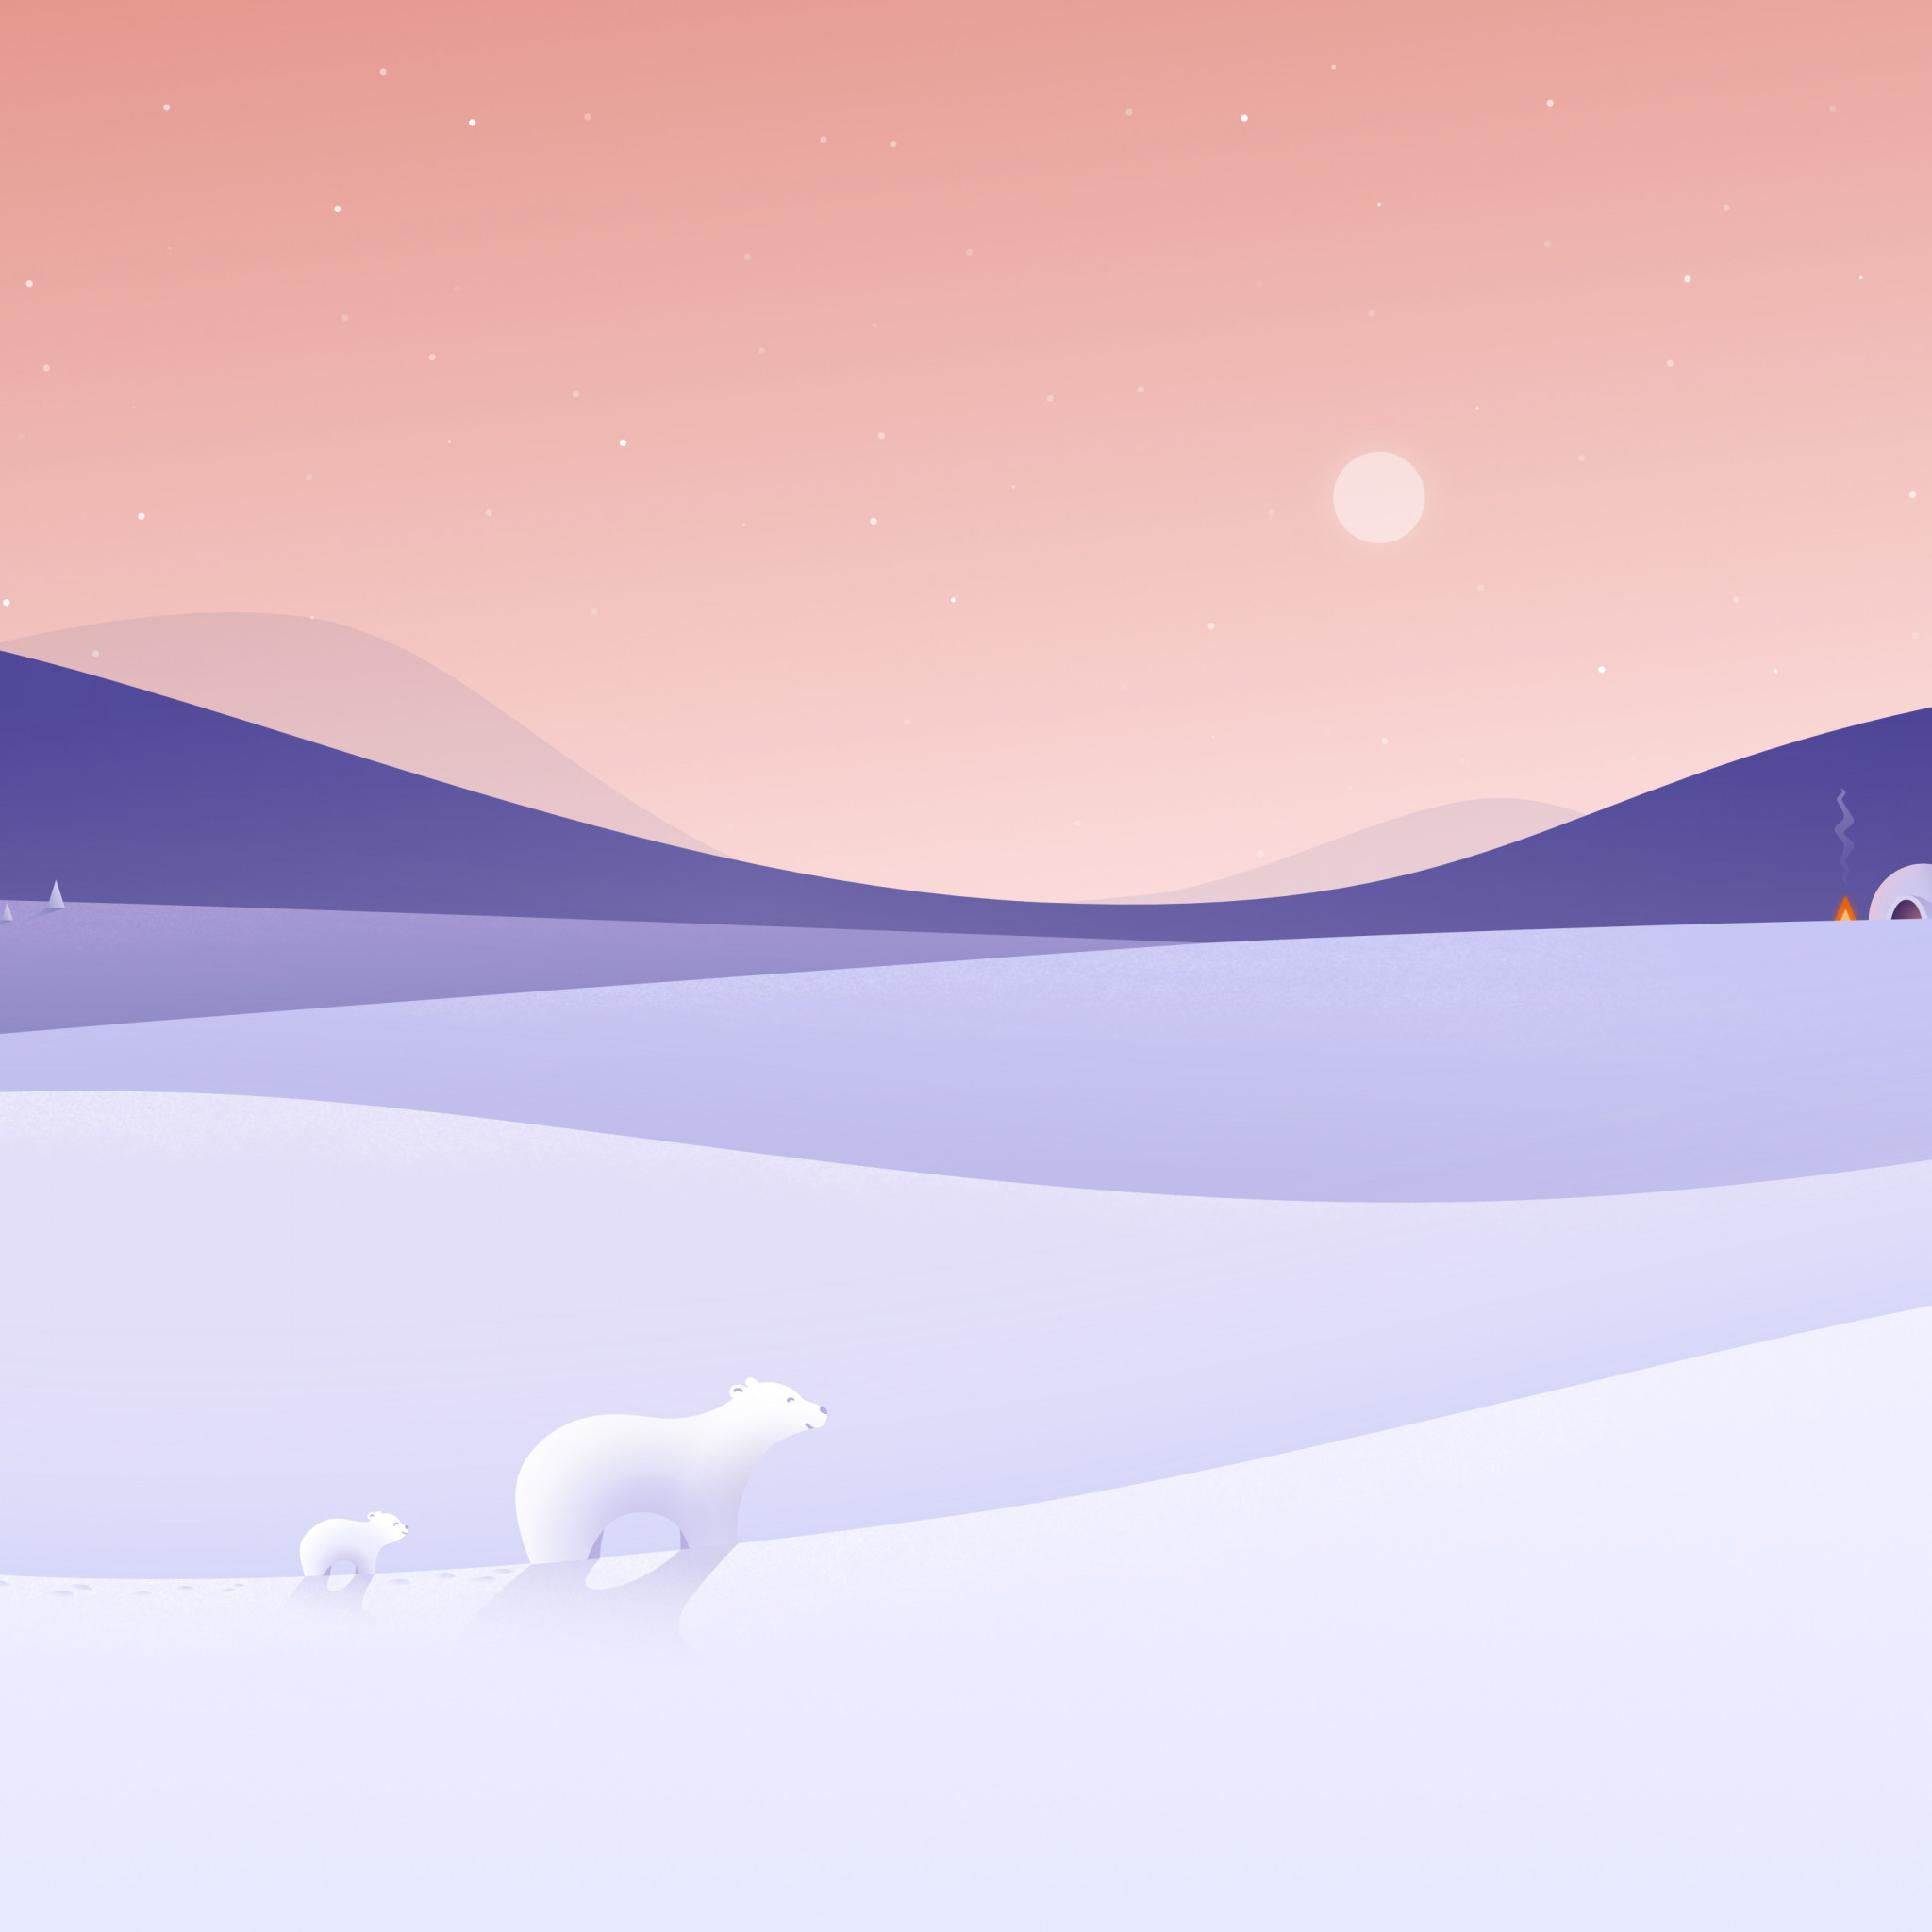 Polar bears illustration wallpaper 2048x2048